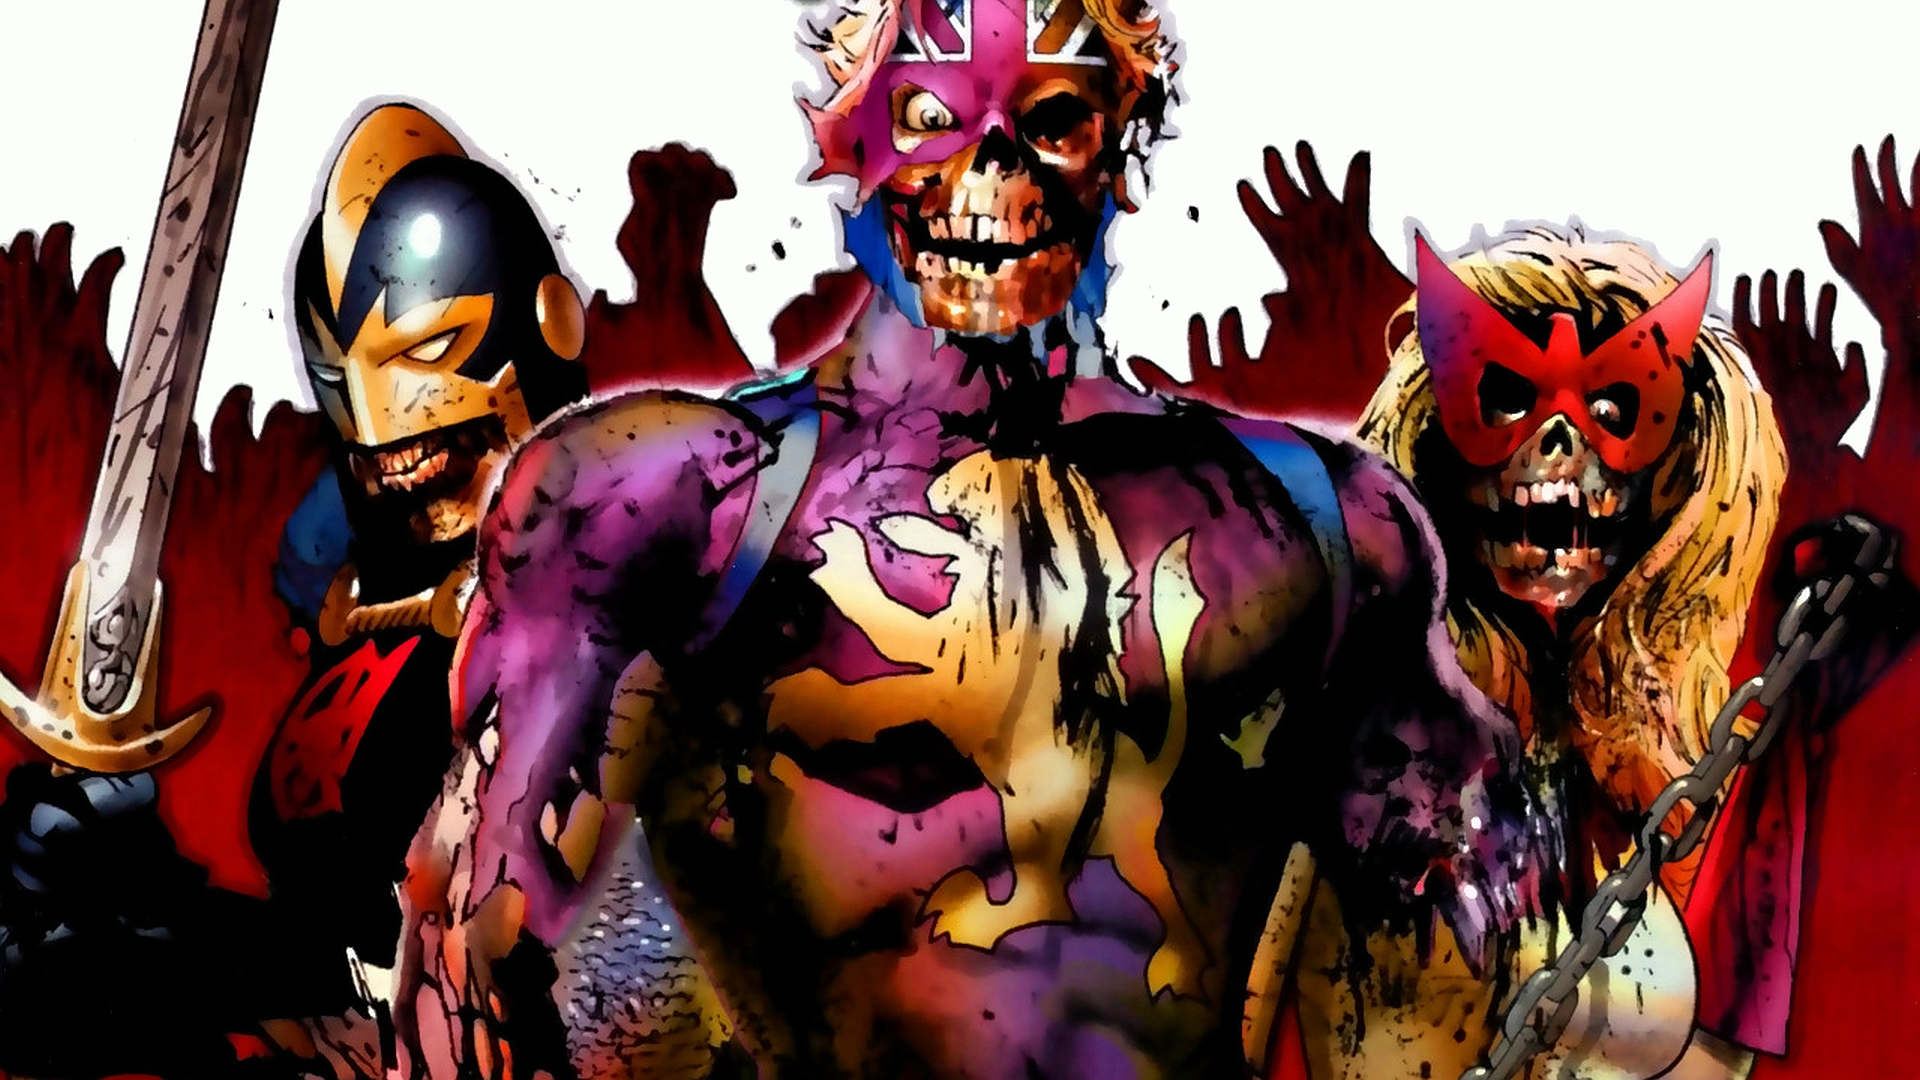 Zombies Wallpaper 1920x1080 Marvel Zombies ...